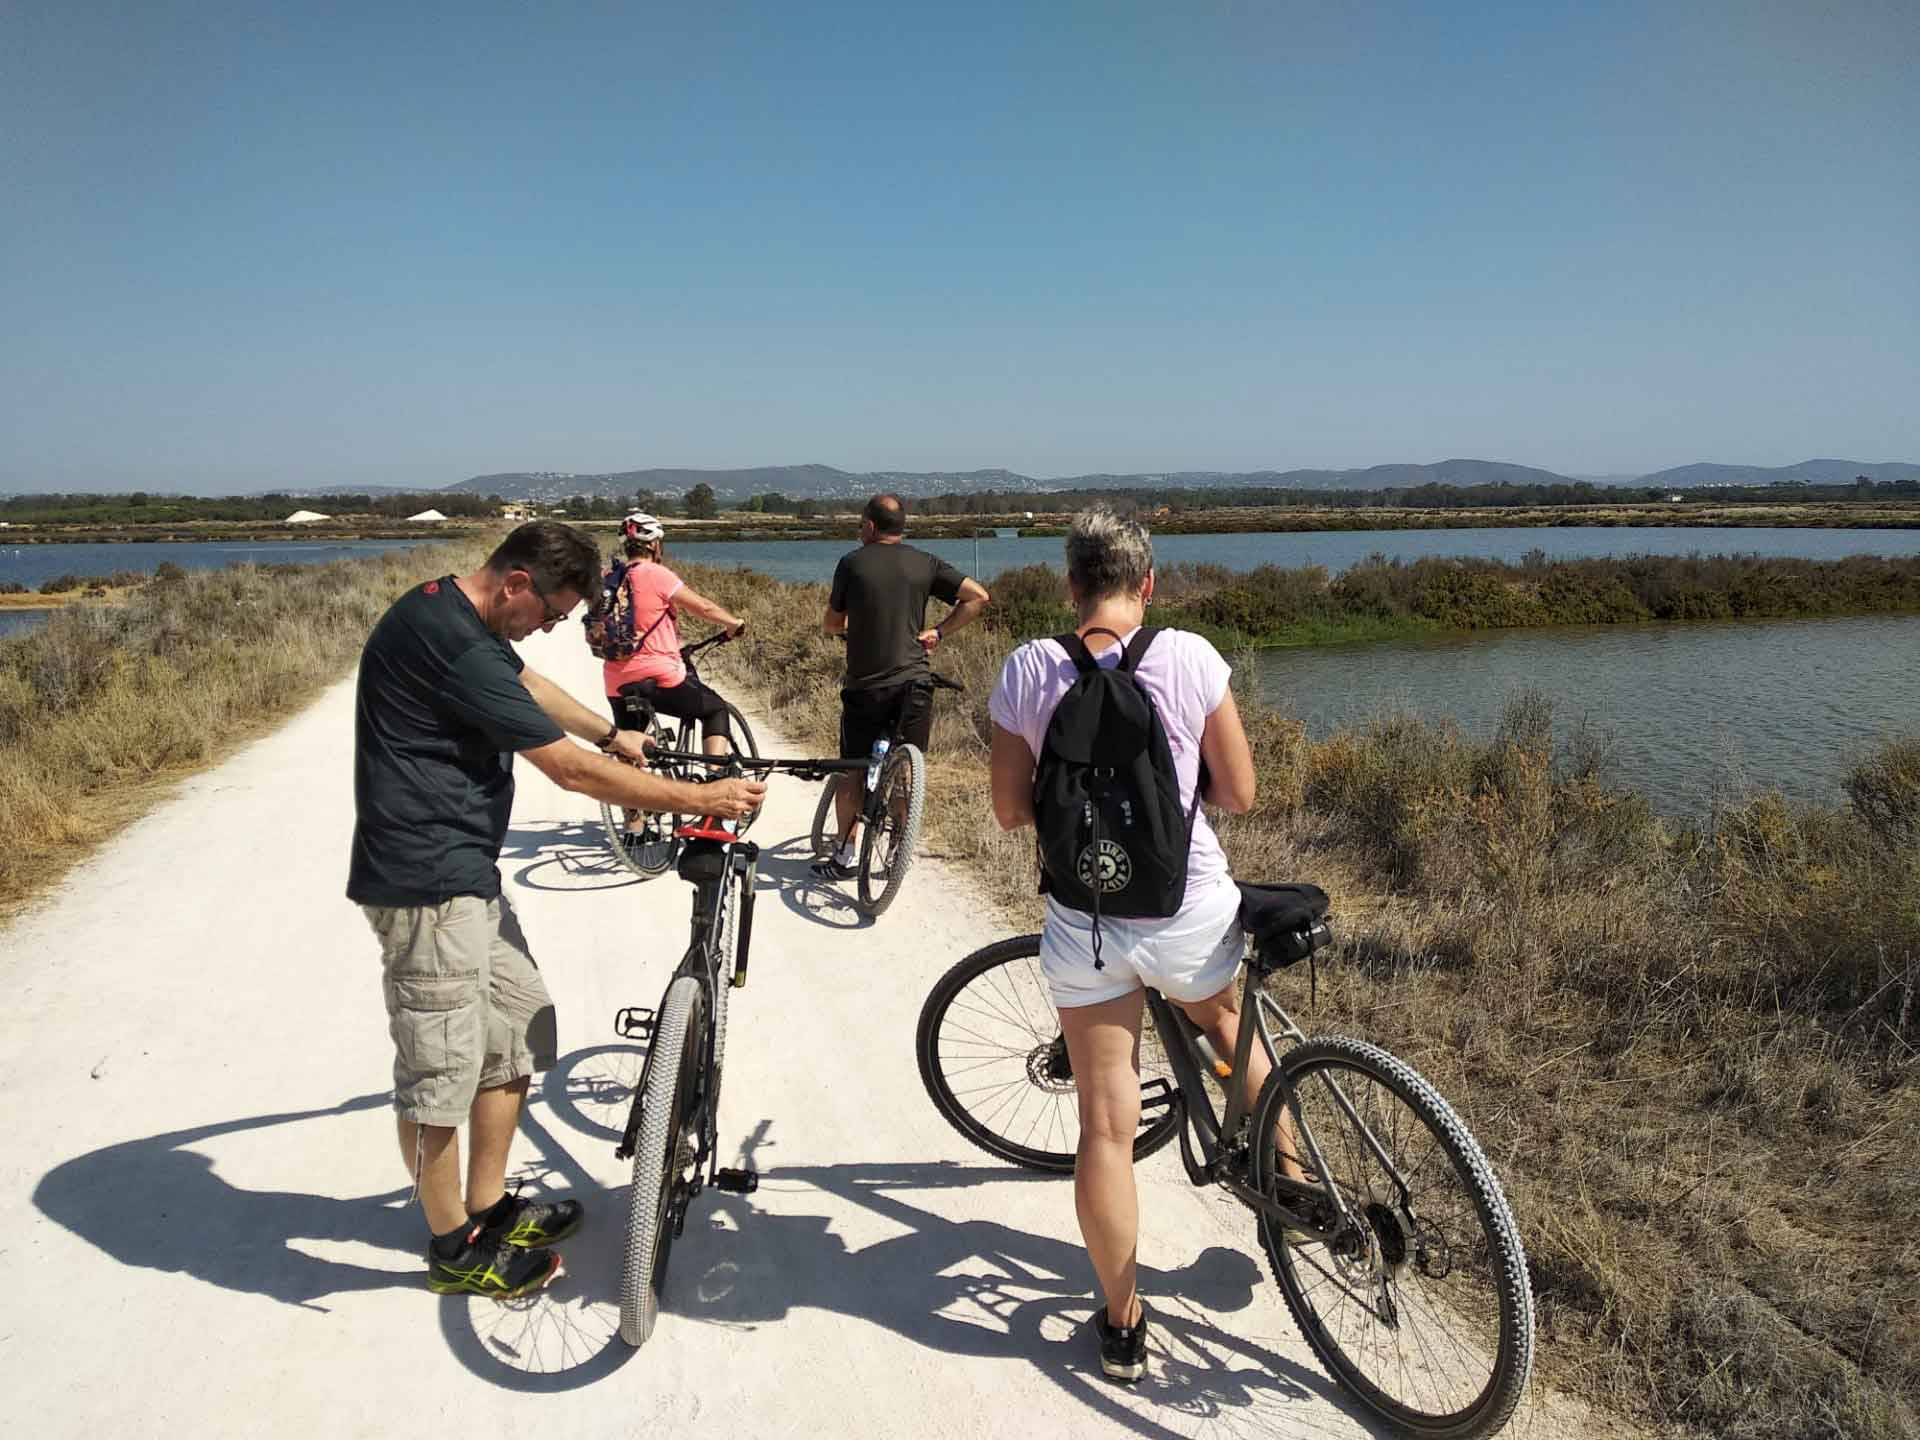 People are enjoying bike tour from MTB Algarve, the best bike rental and tour in Algarve and around Portugal